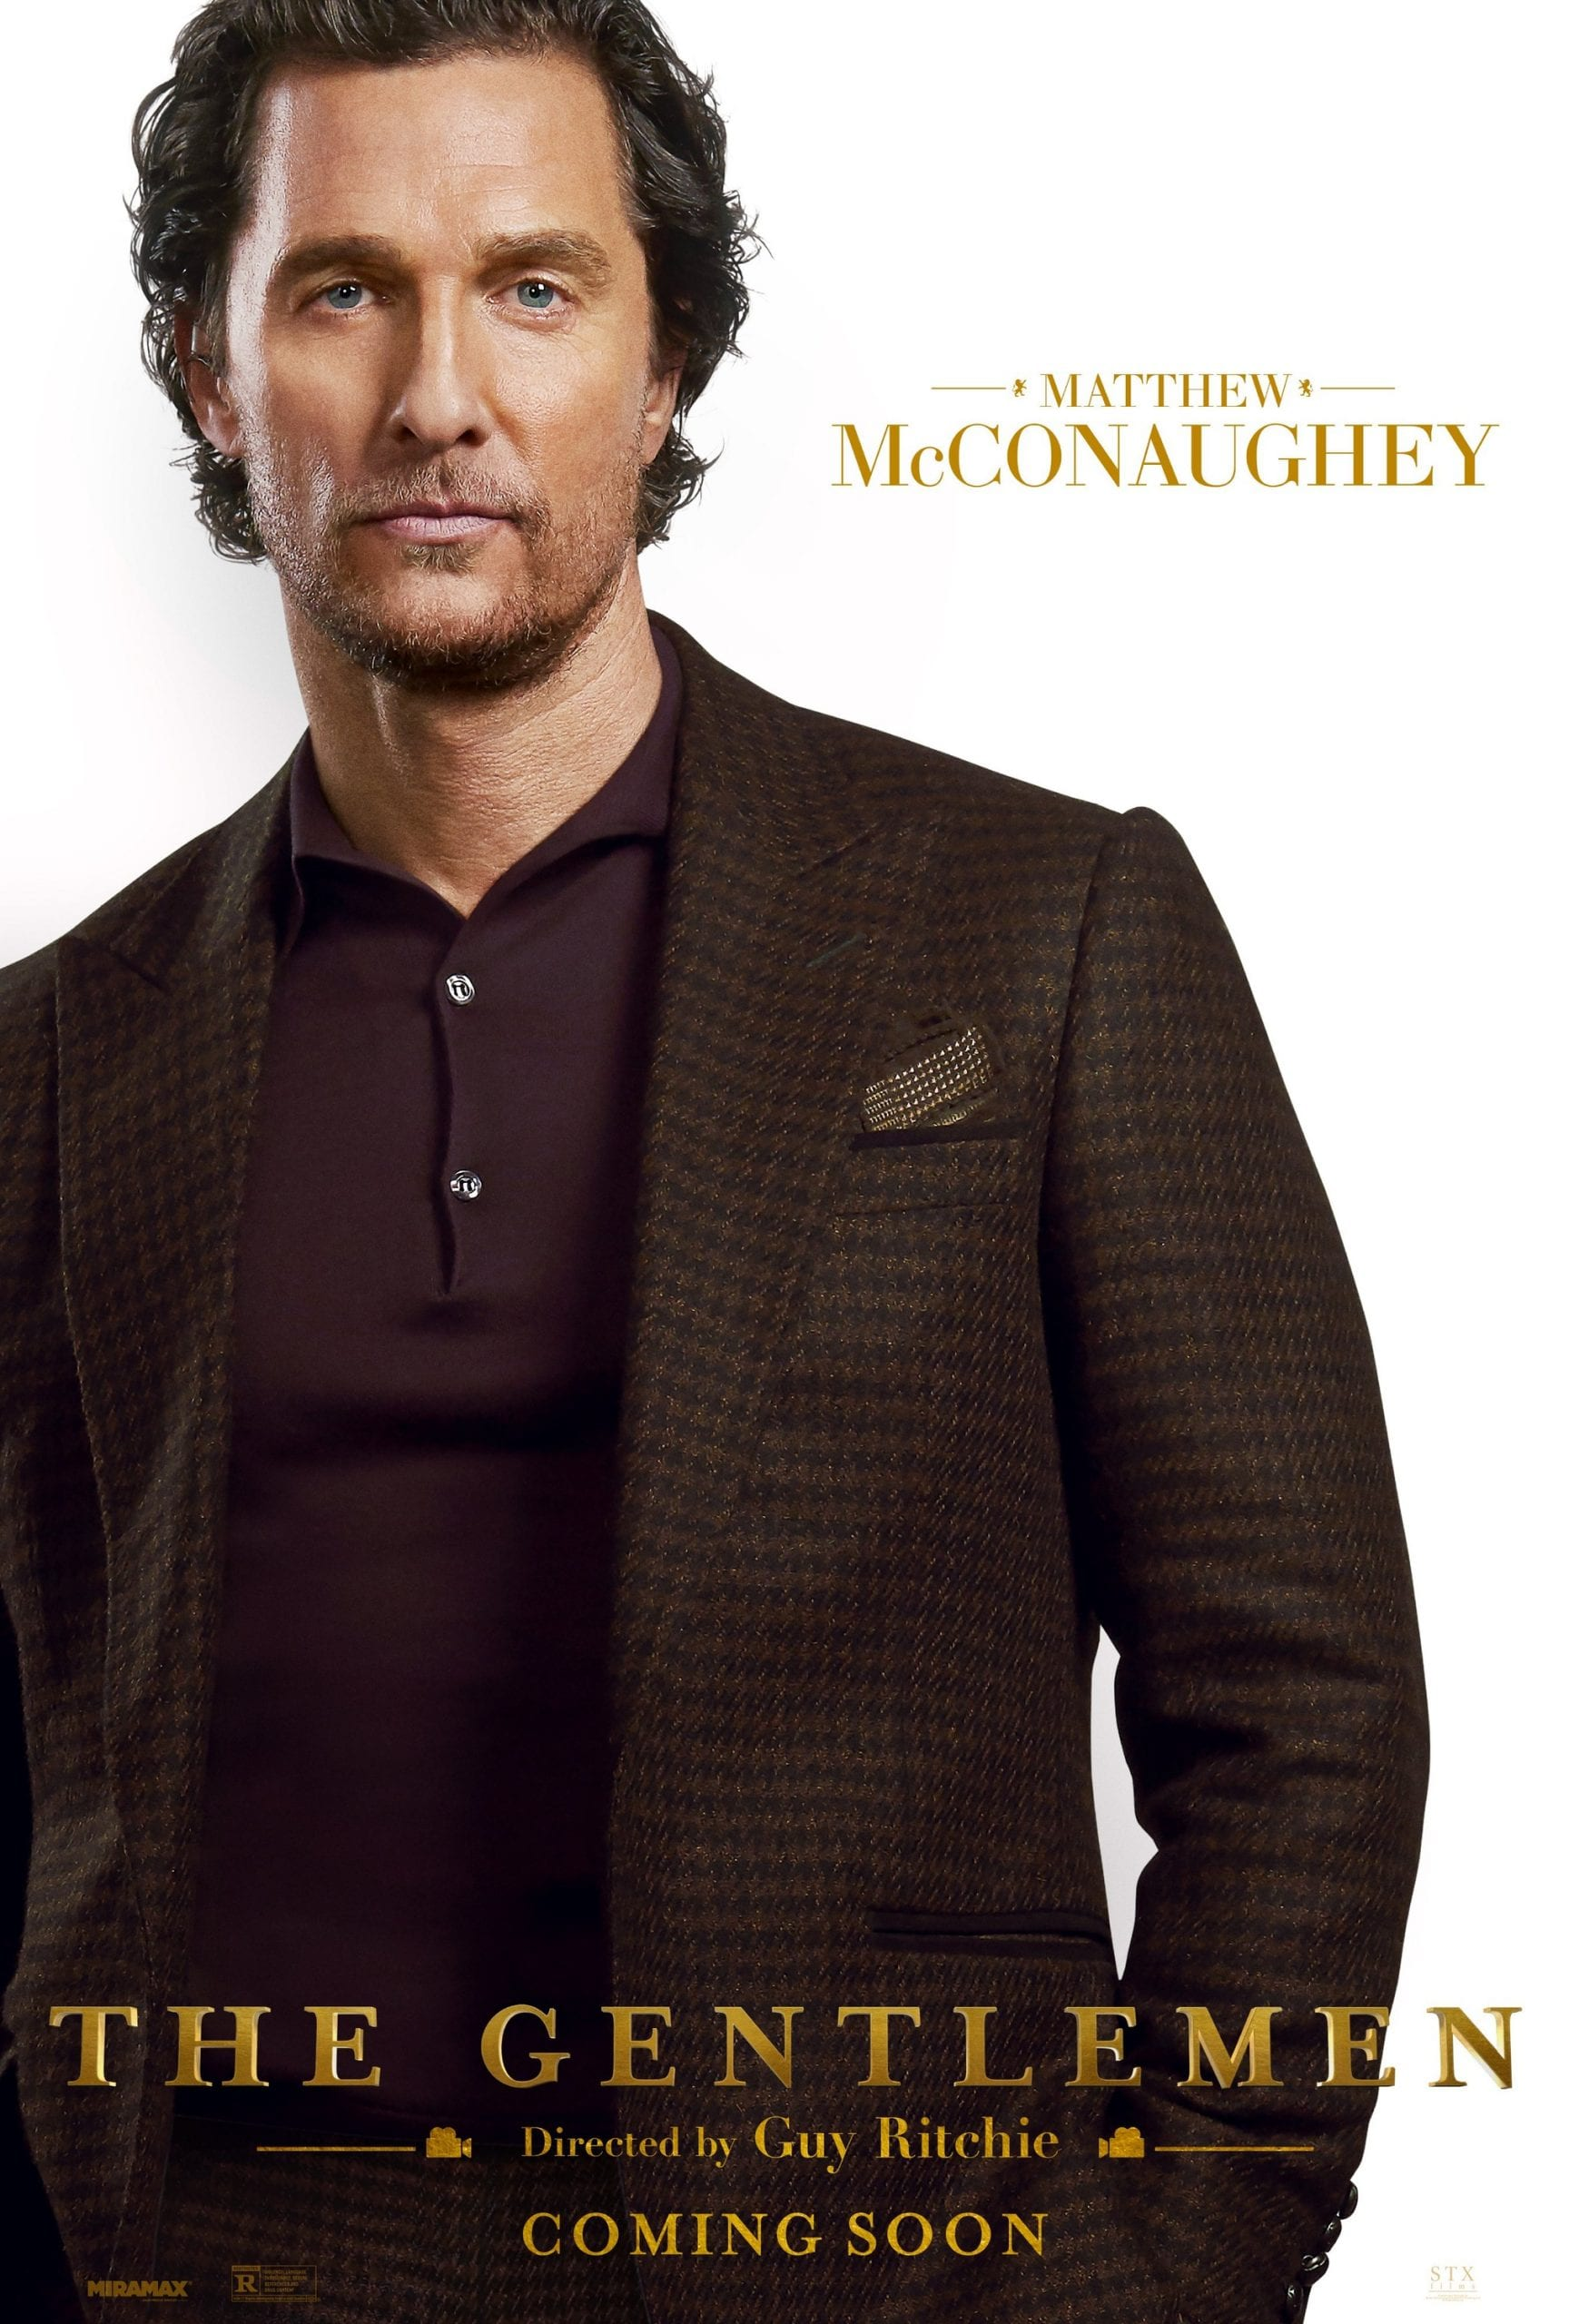 The Gentlemen Character Posters Matthew McConaughey as Michael Mickey Pearson